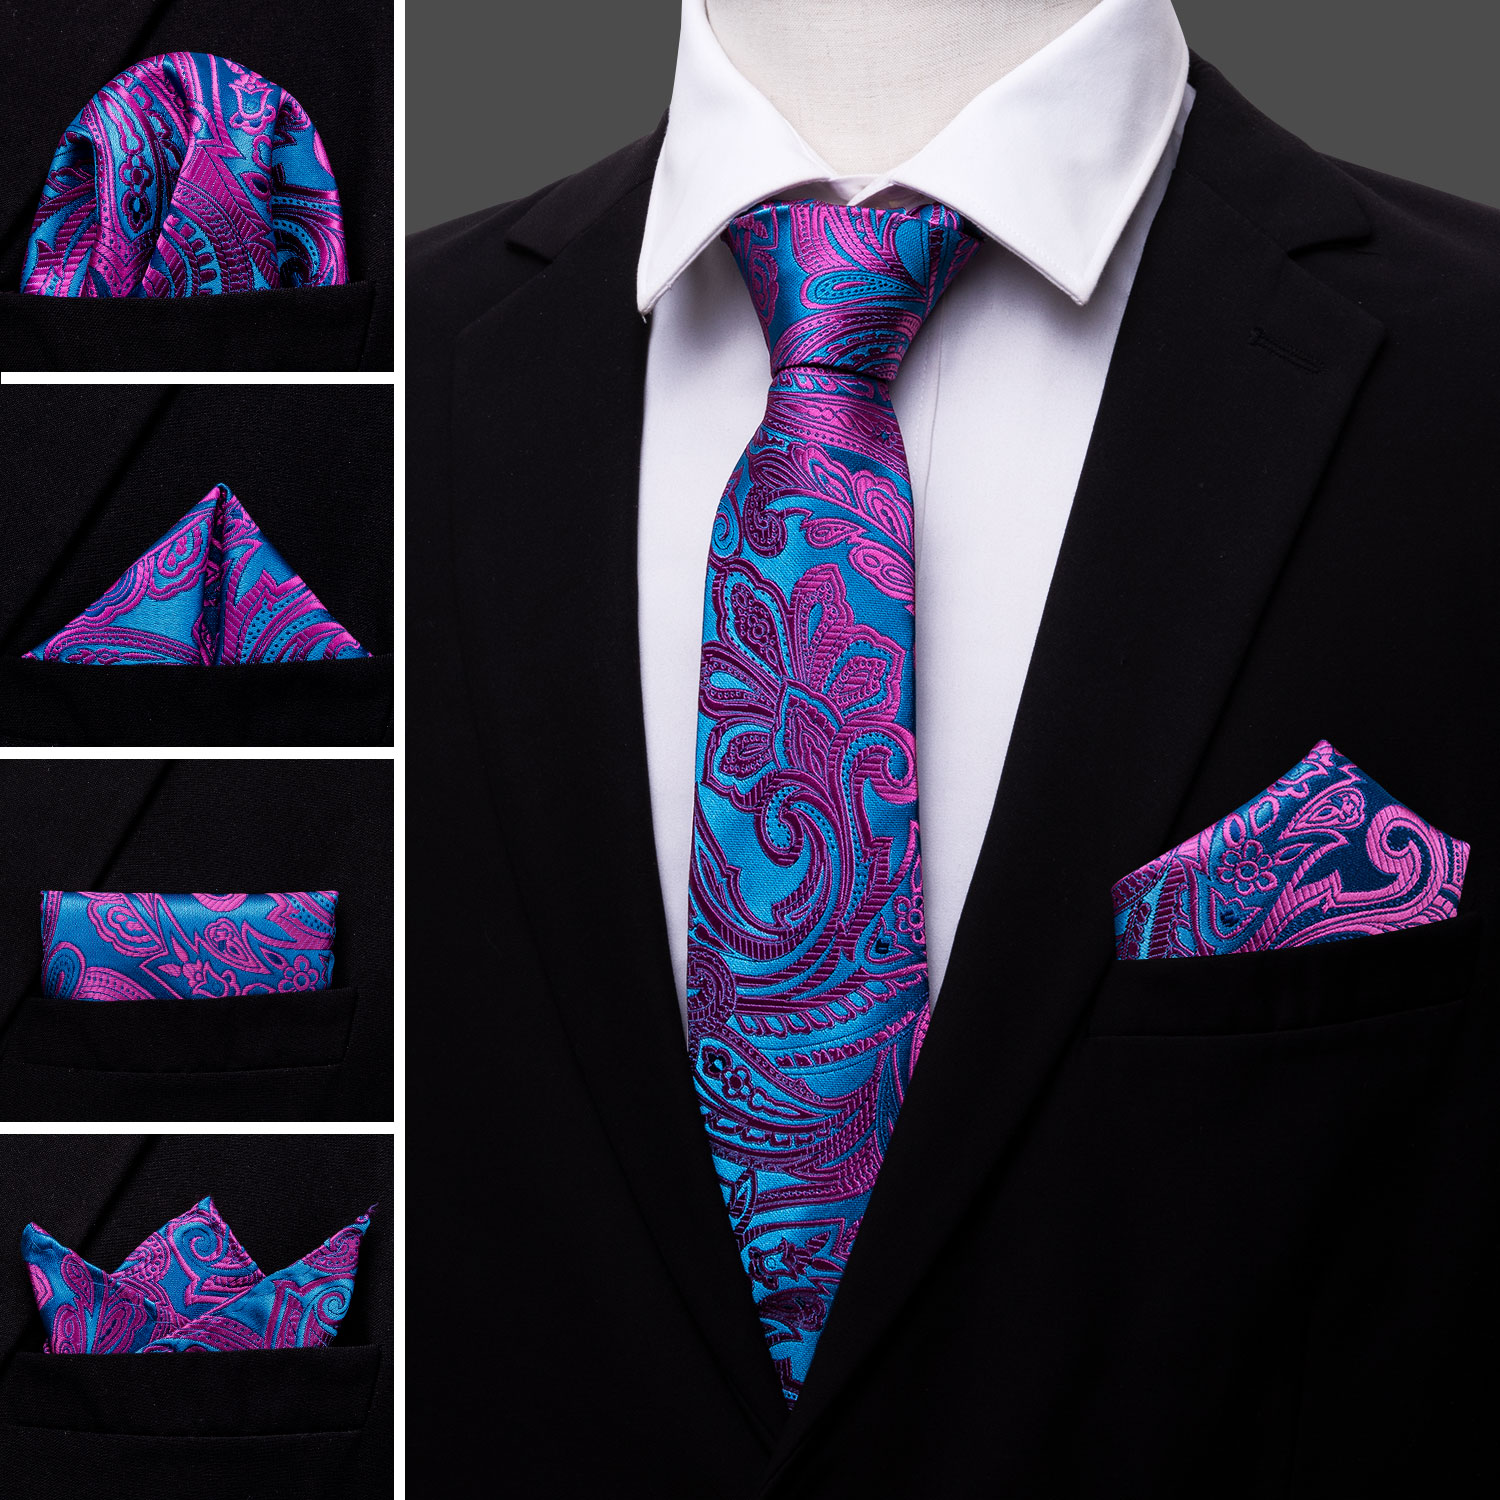 Barry.Wang Tie Set Pocket Square Cufflinks Woven Silk Neckties for Men Formal